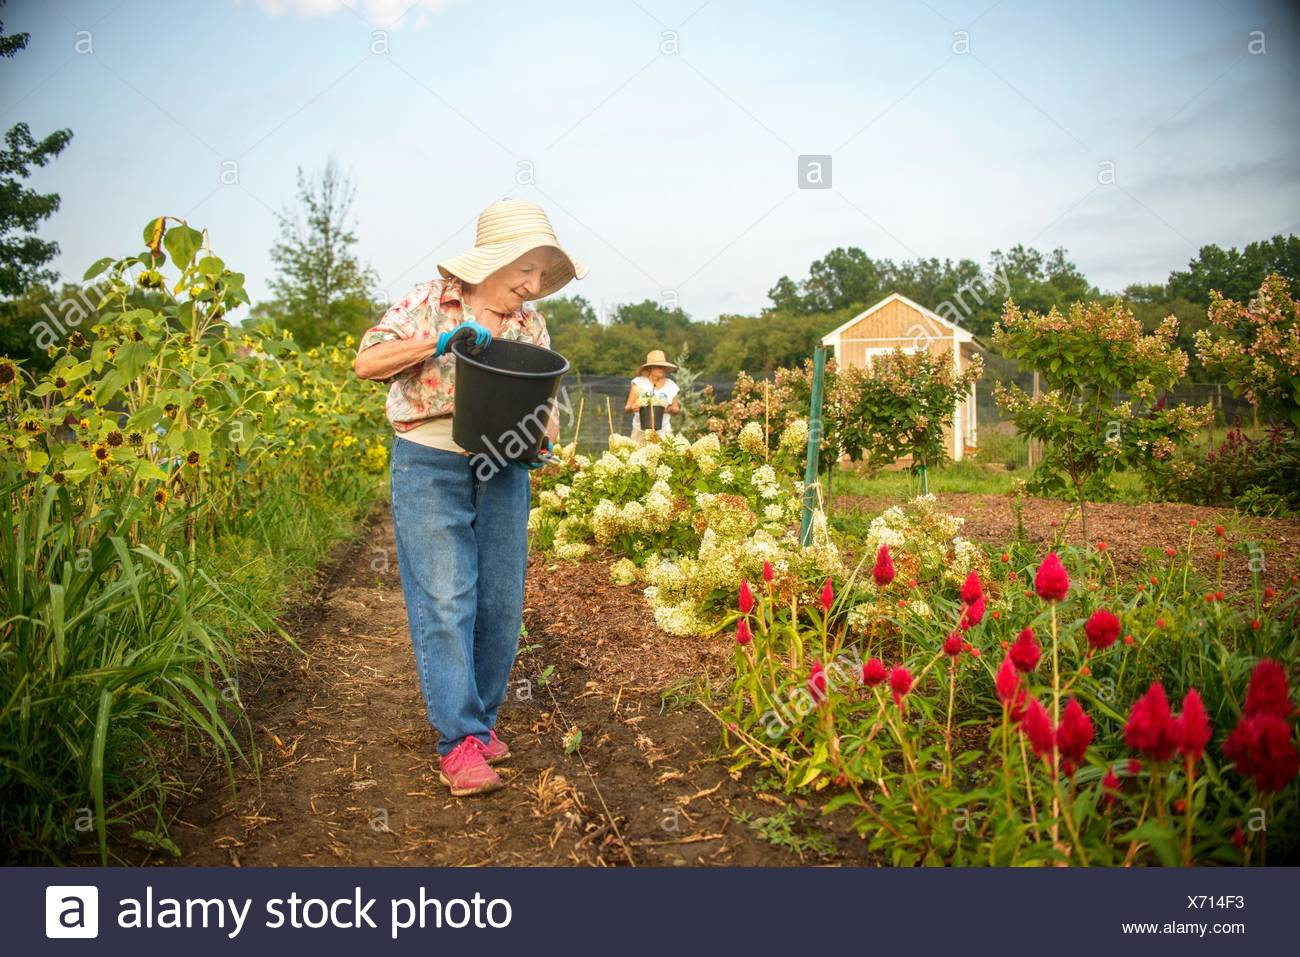 Senior woman watering flowers with bucket on farm Stock Photo